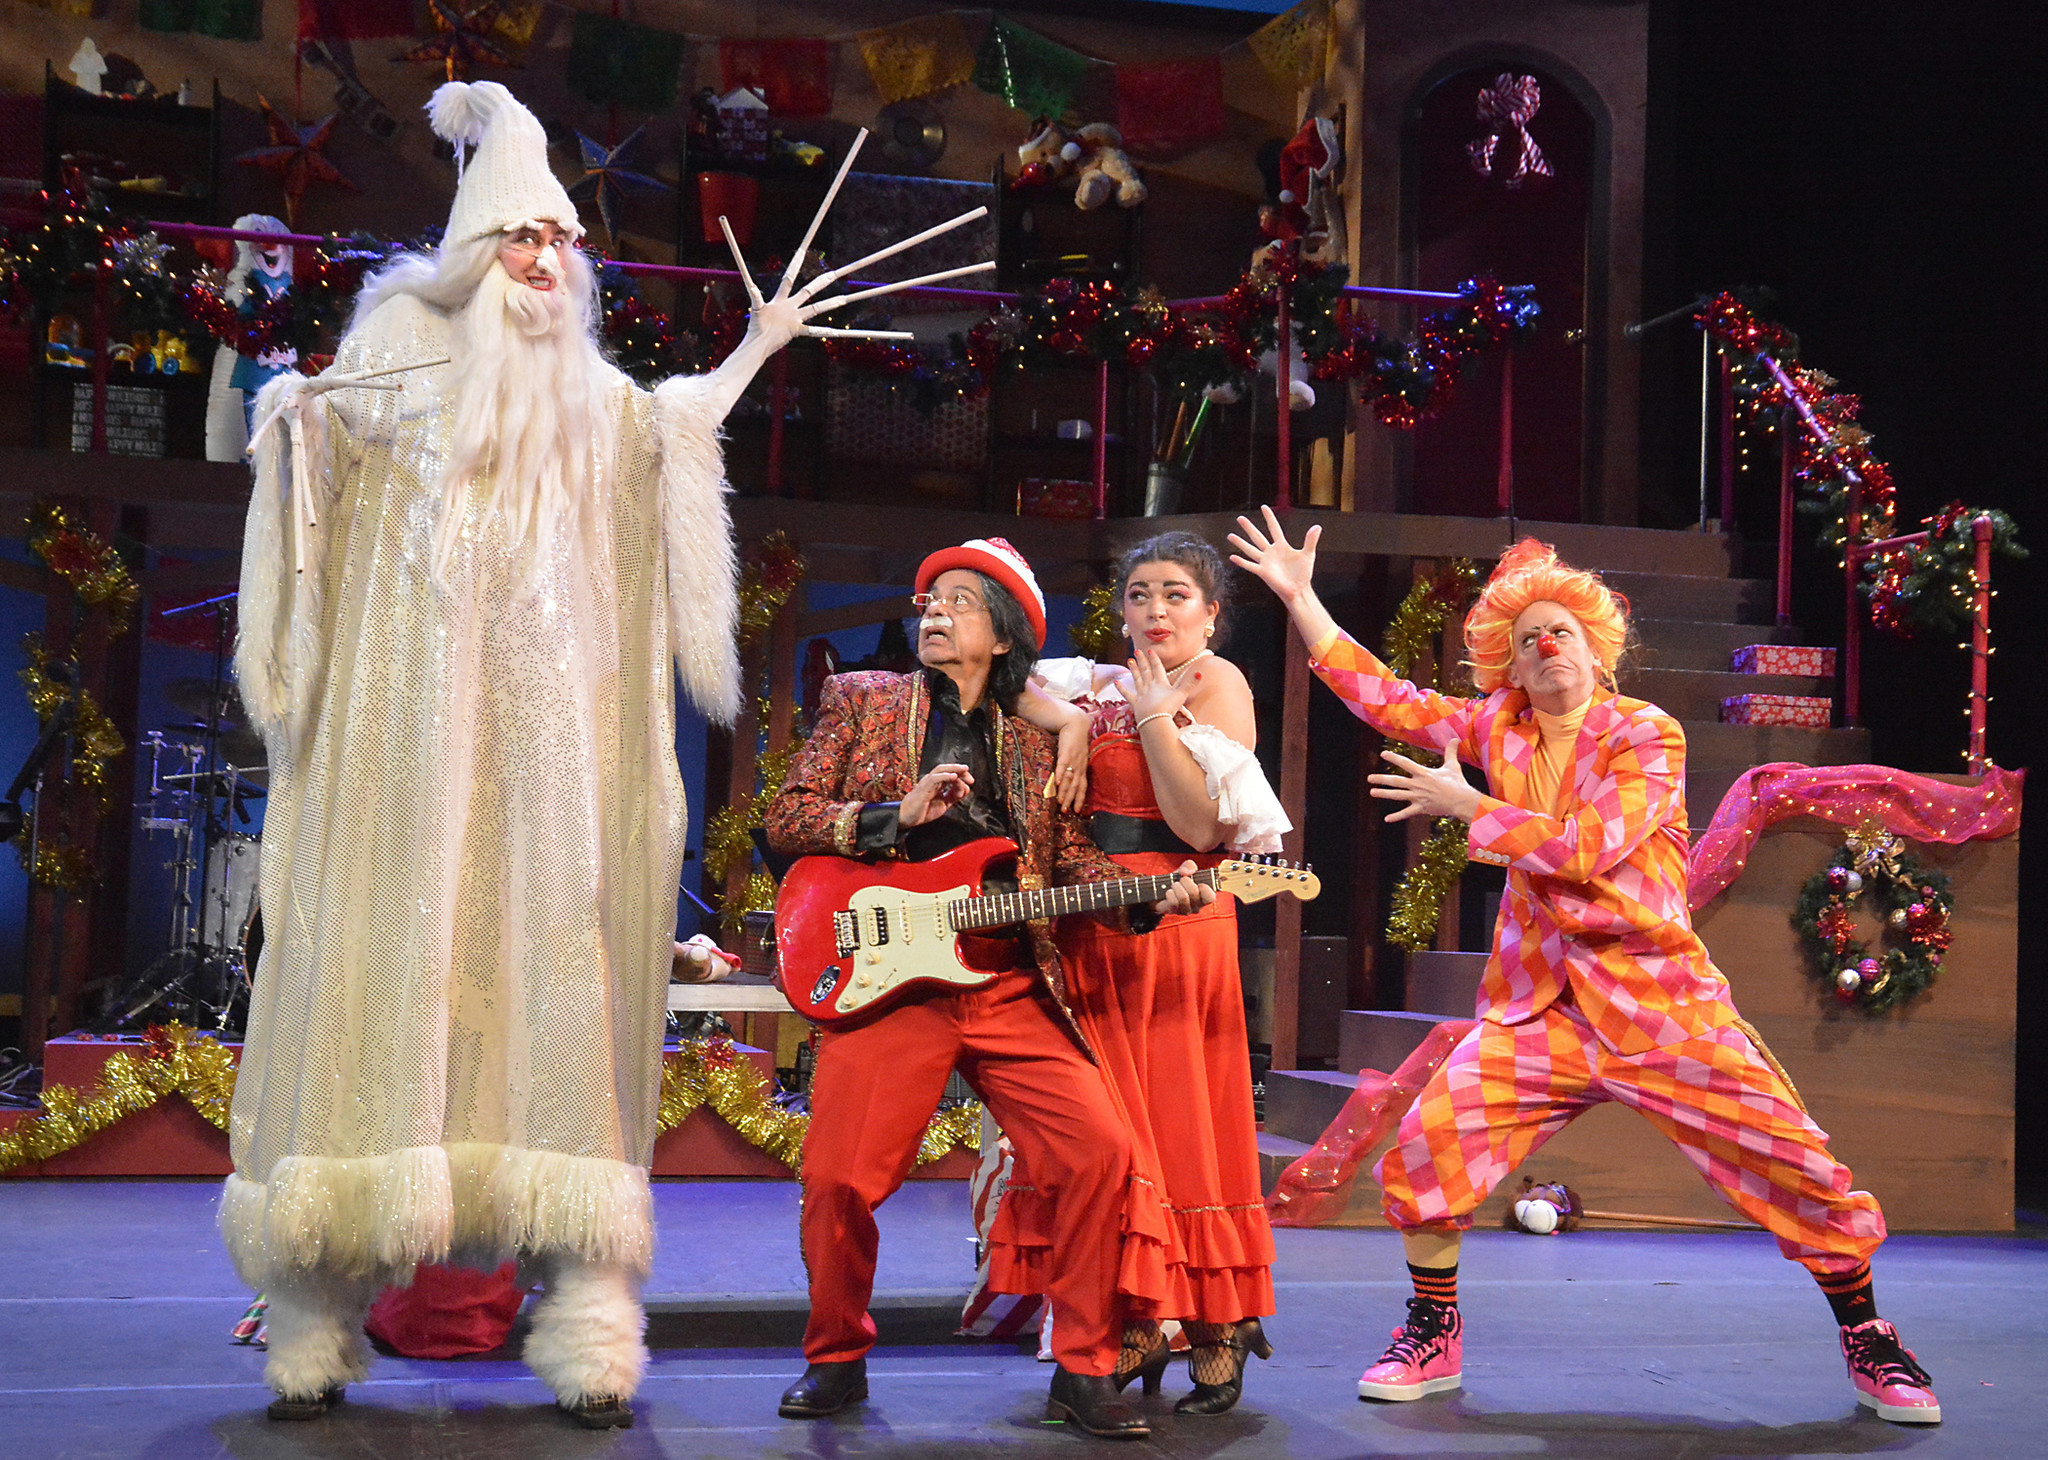 Review: Did Carlos Santana ever imagine this? The Troubies get raucous with 'Santana Claus'